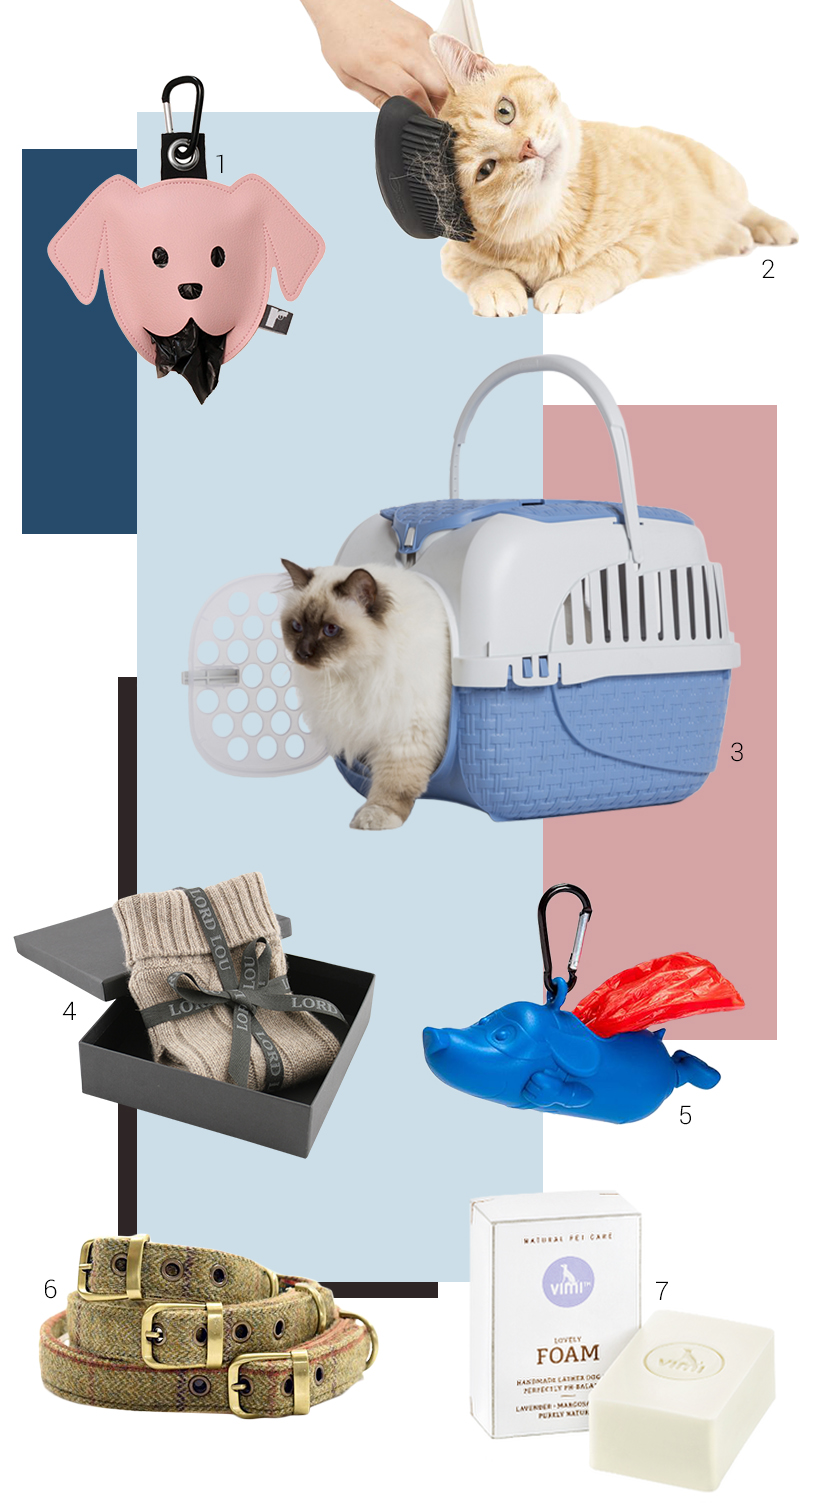 Collage from products related to dog walk, grooming and transportation from exhibitors of the Ambiente fair